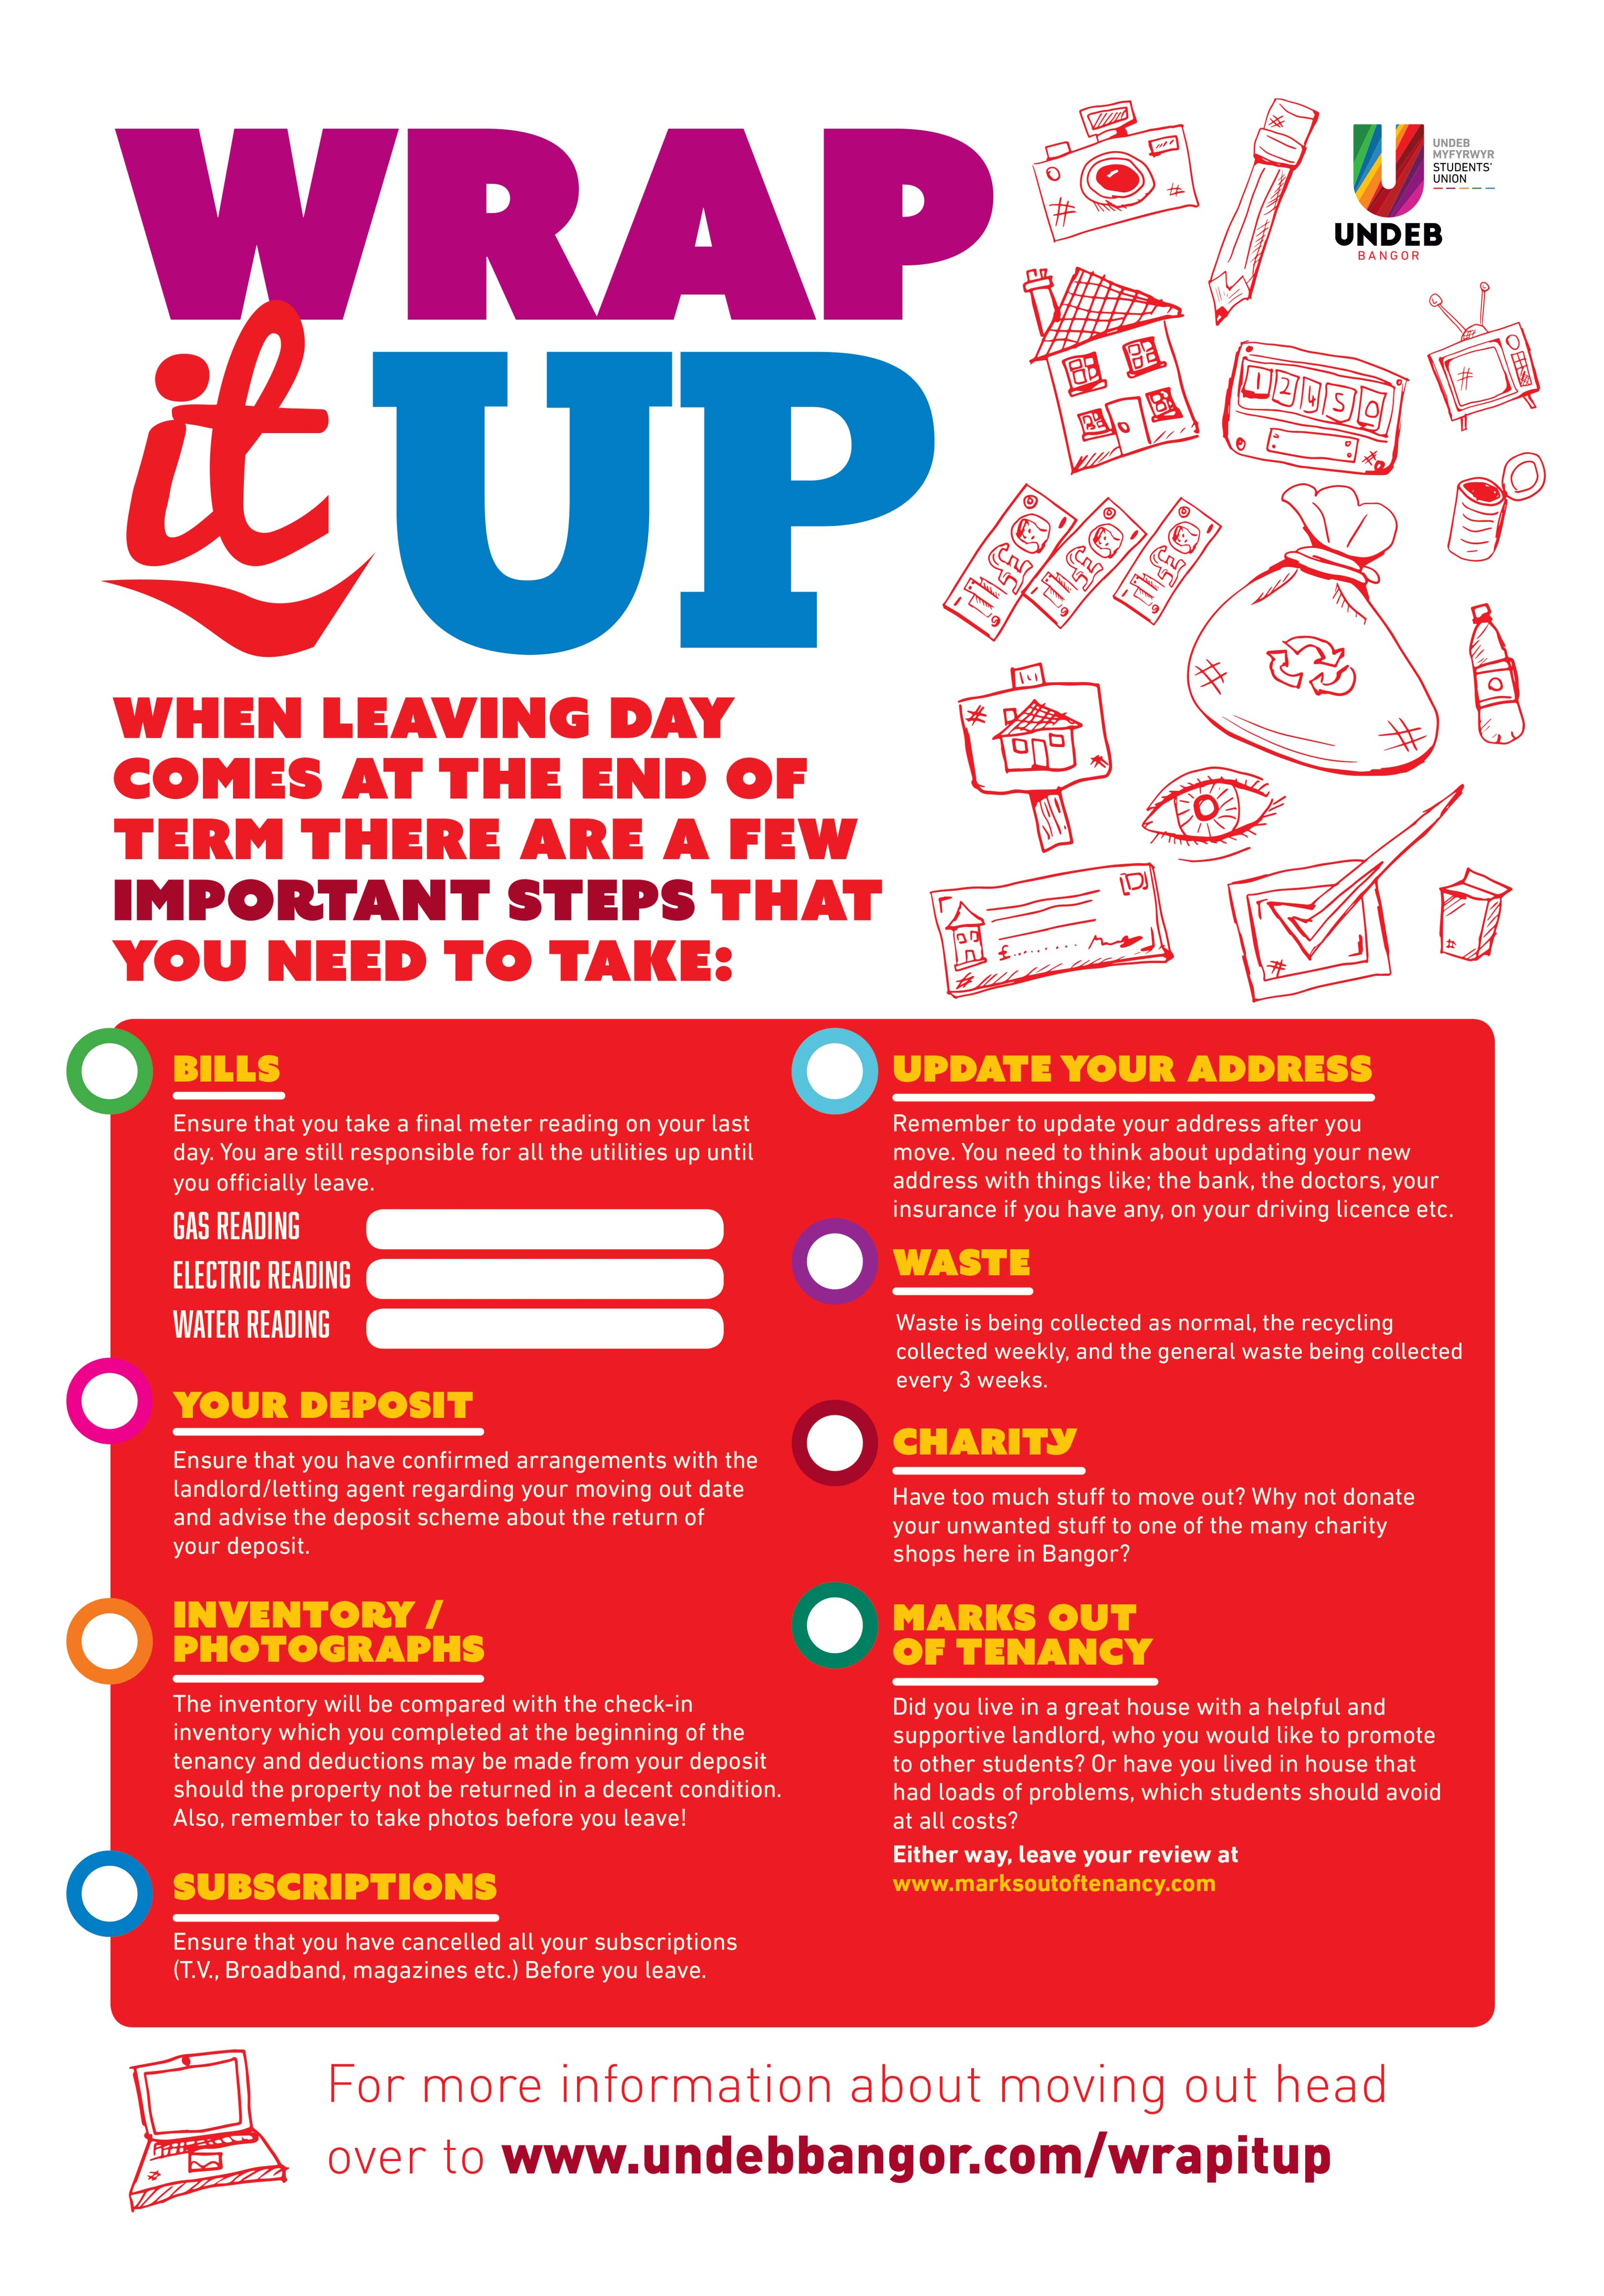 The Wrap it Up Campaign Poster